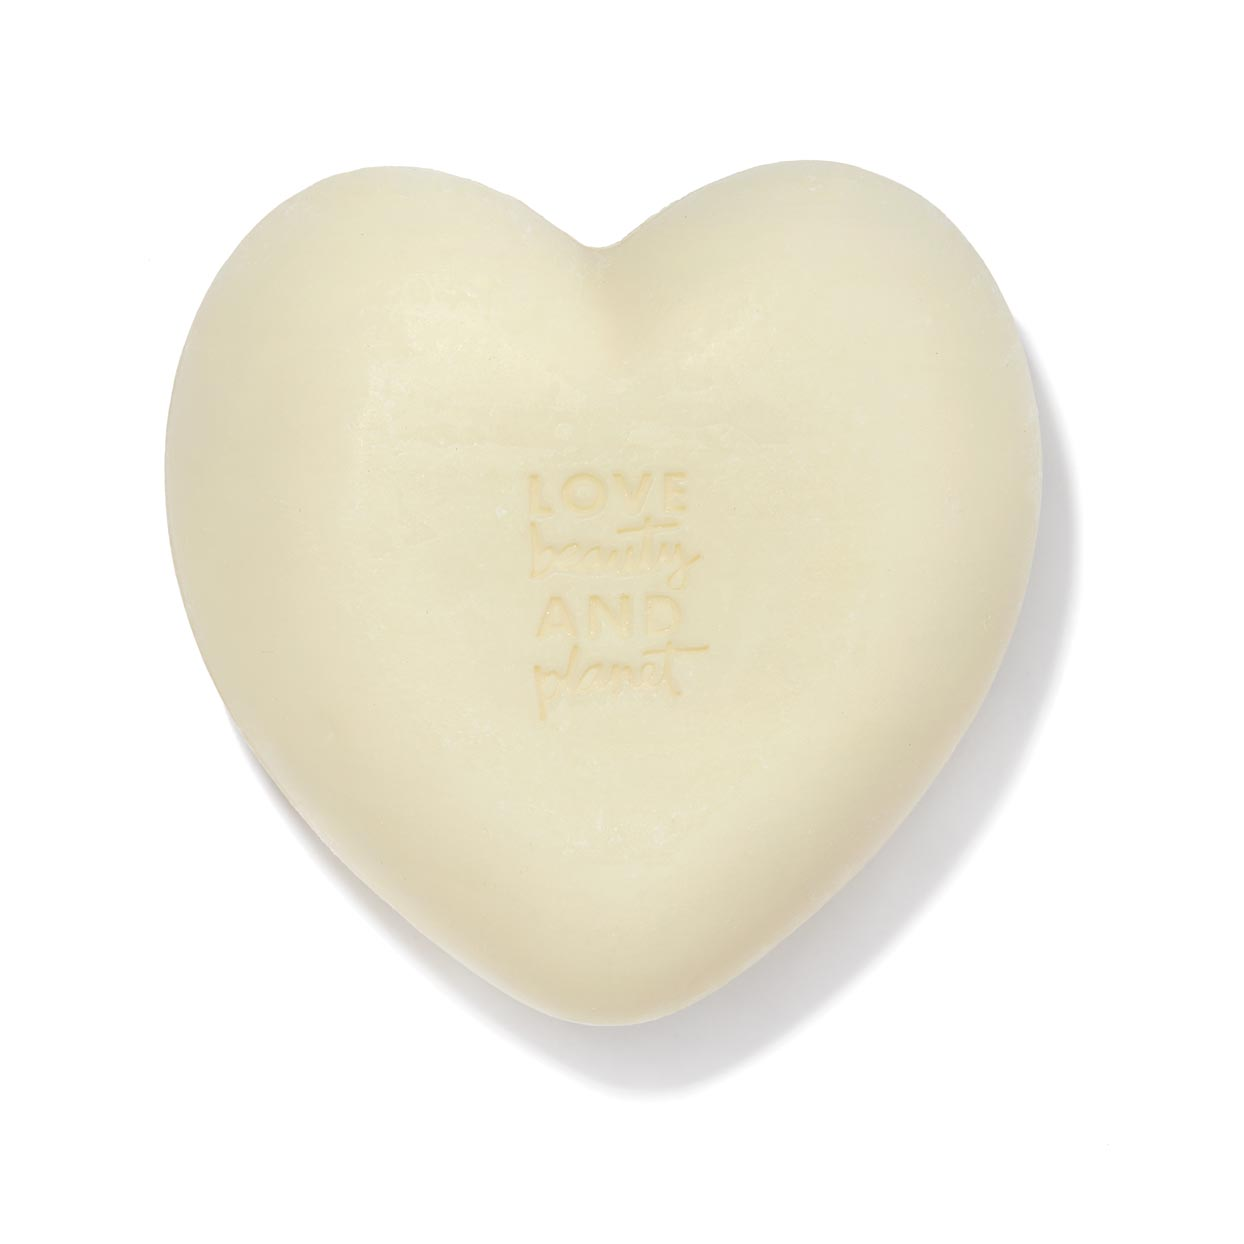 Love Beauty and Planet Shampoo and Conditioner Bars